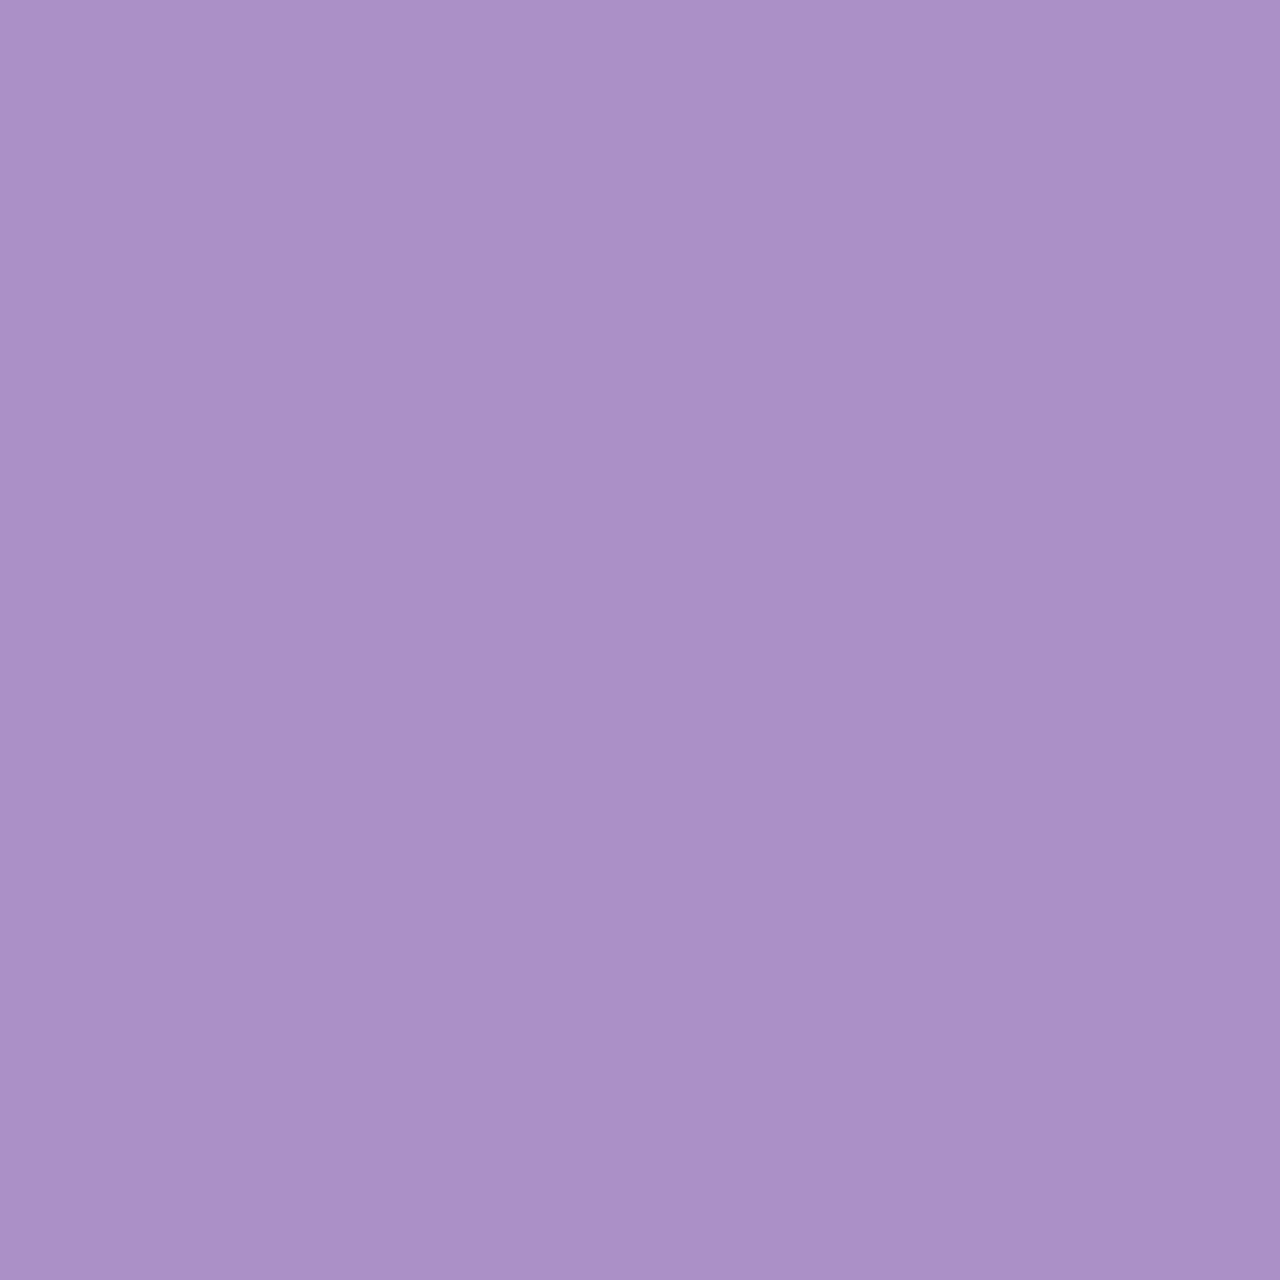 Rosco Calcolor Sheet #4930: 30 Lavender, Gels